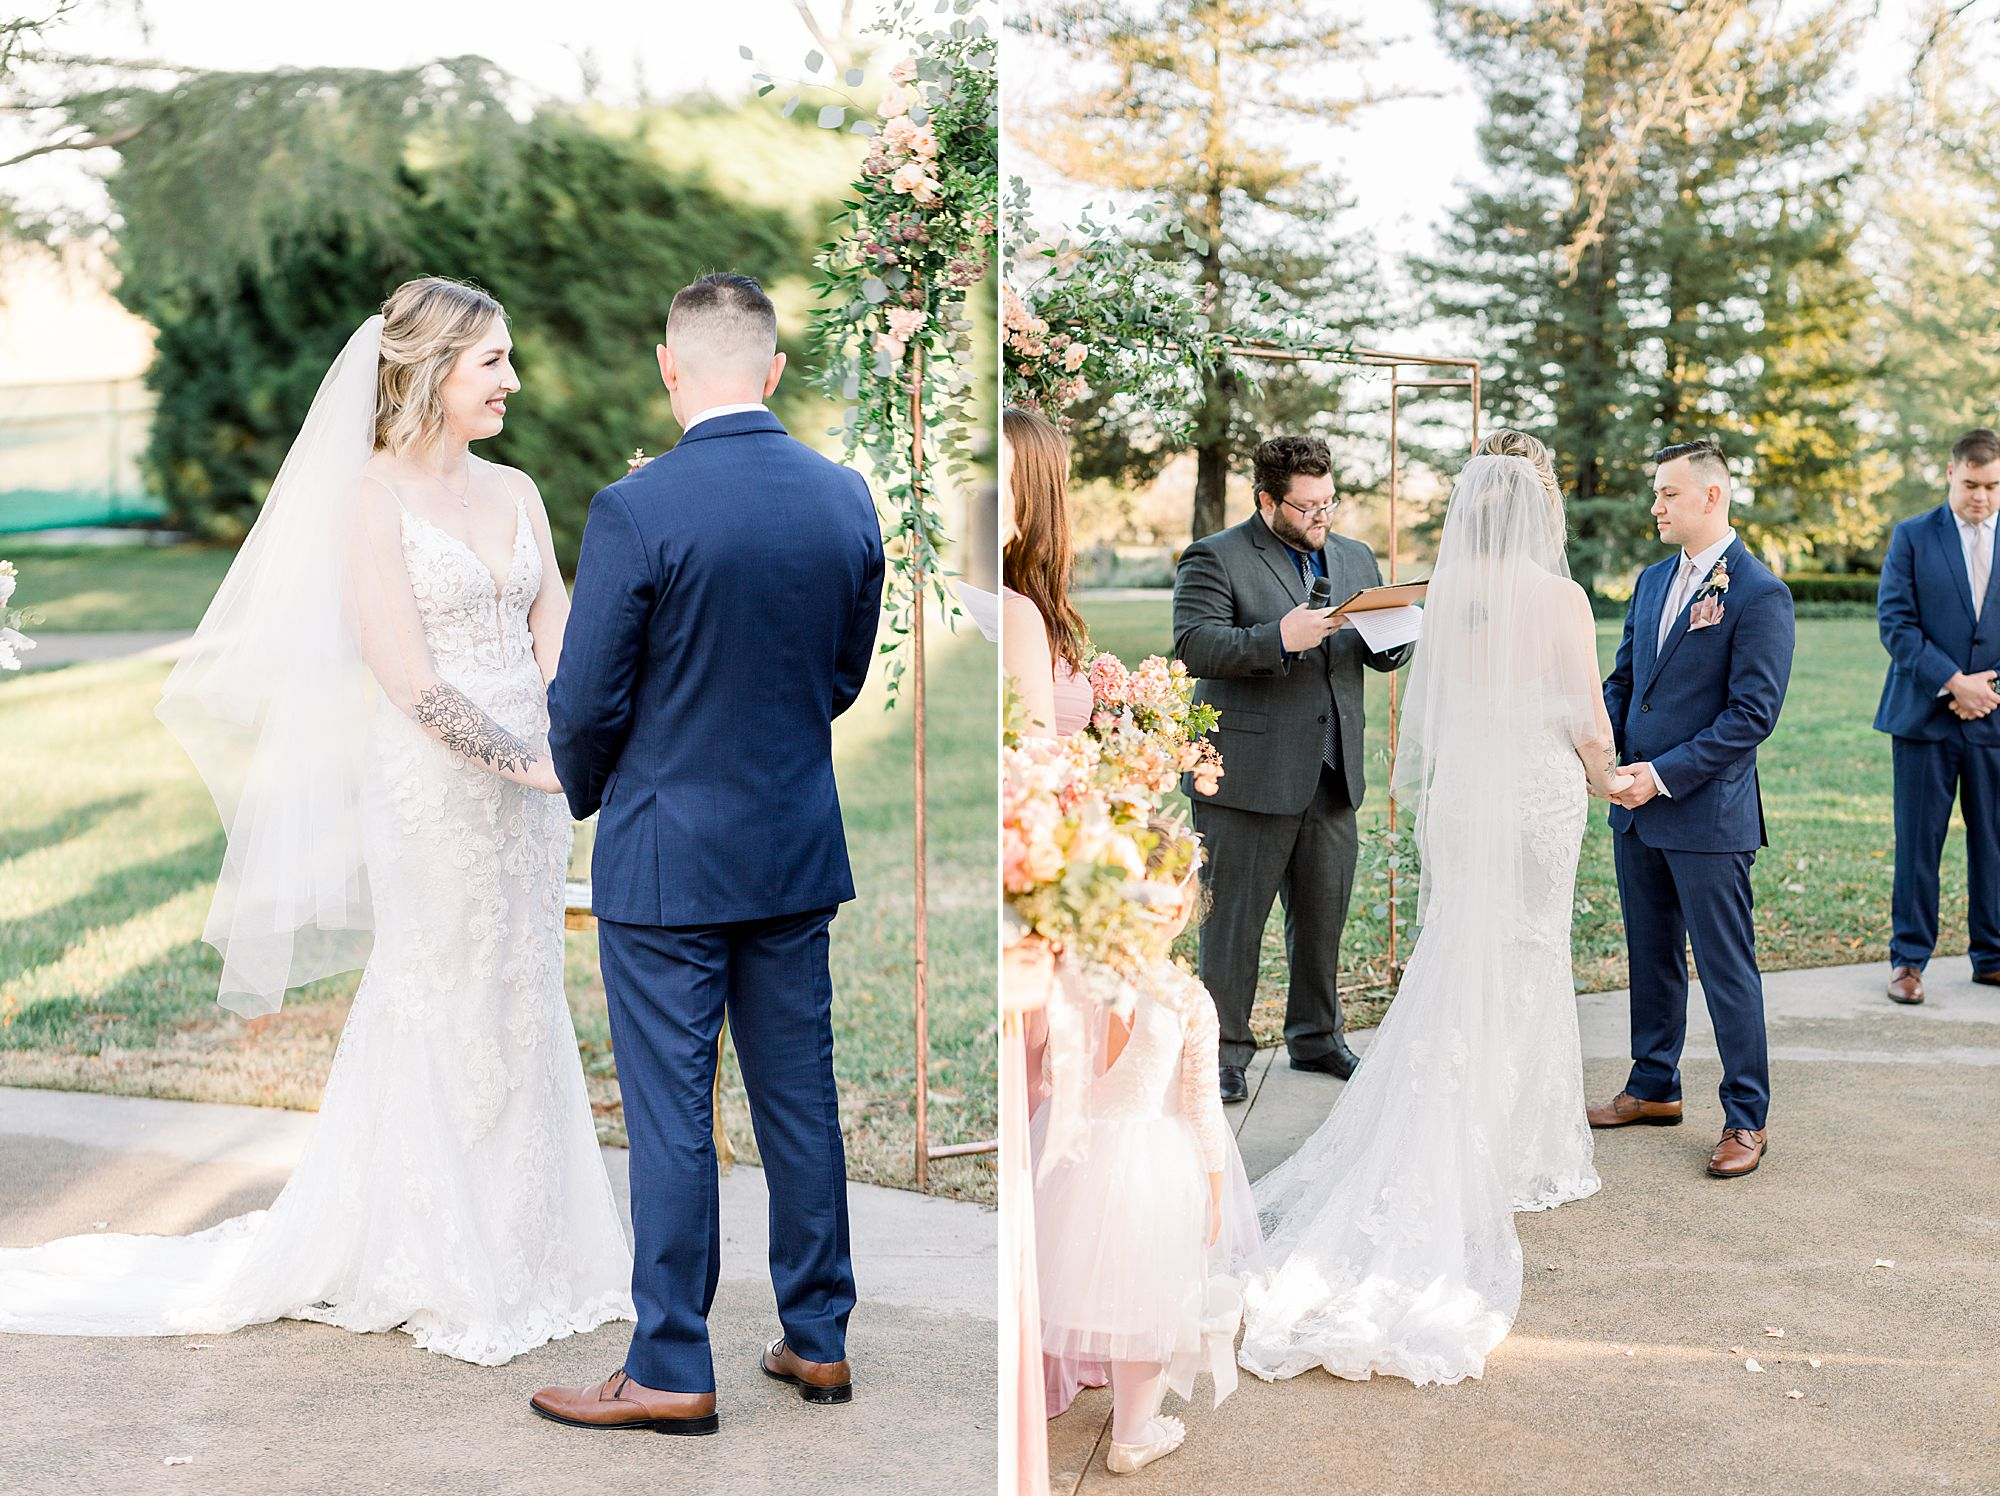 Inn at Park Winters Wedding - Lindsay and Shane - Ashley Baumgartner - Park Winters Wedding Photographer - Sacramento Wedding Photographer_0054.jpg